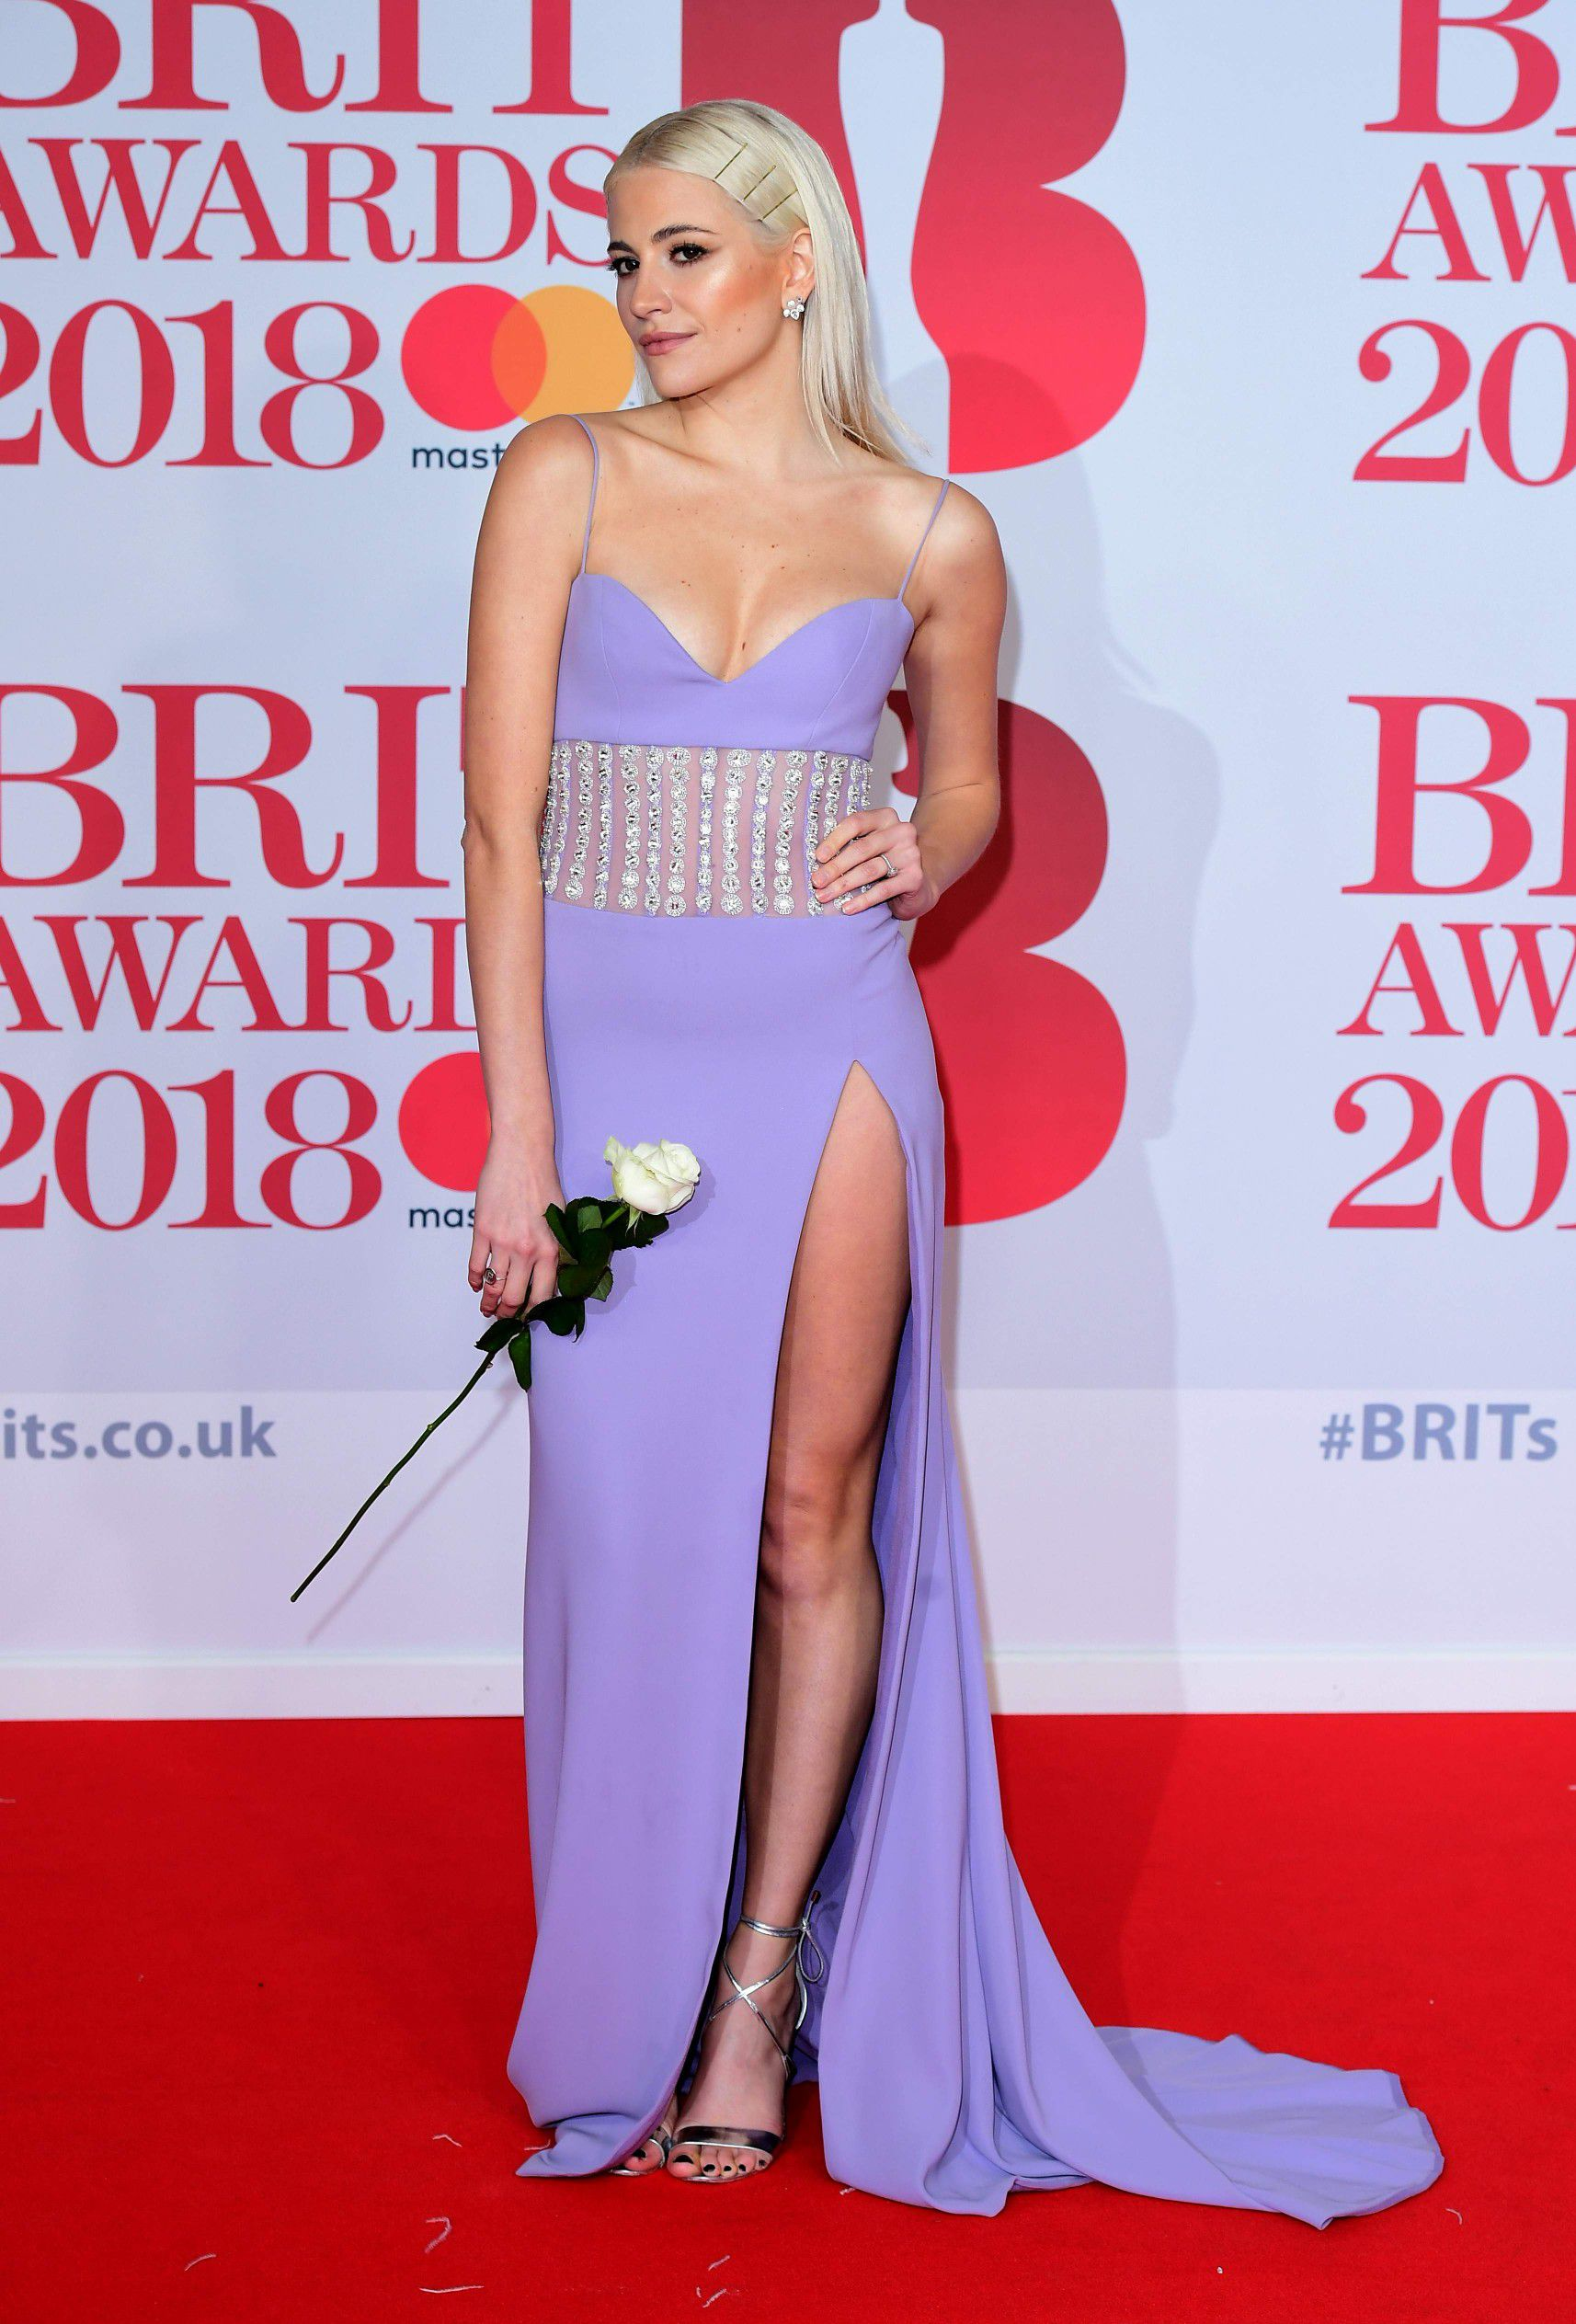 pixie-lott-panty-upskirt-at-the-38th-brit-awards-in-london-4571